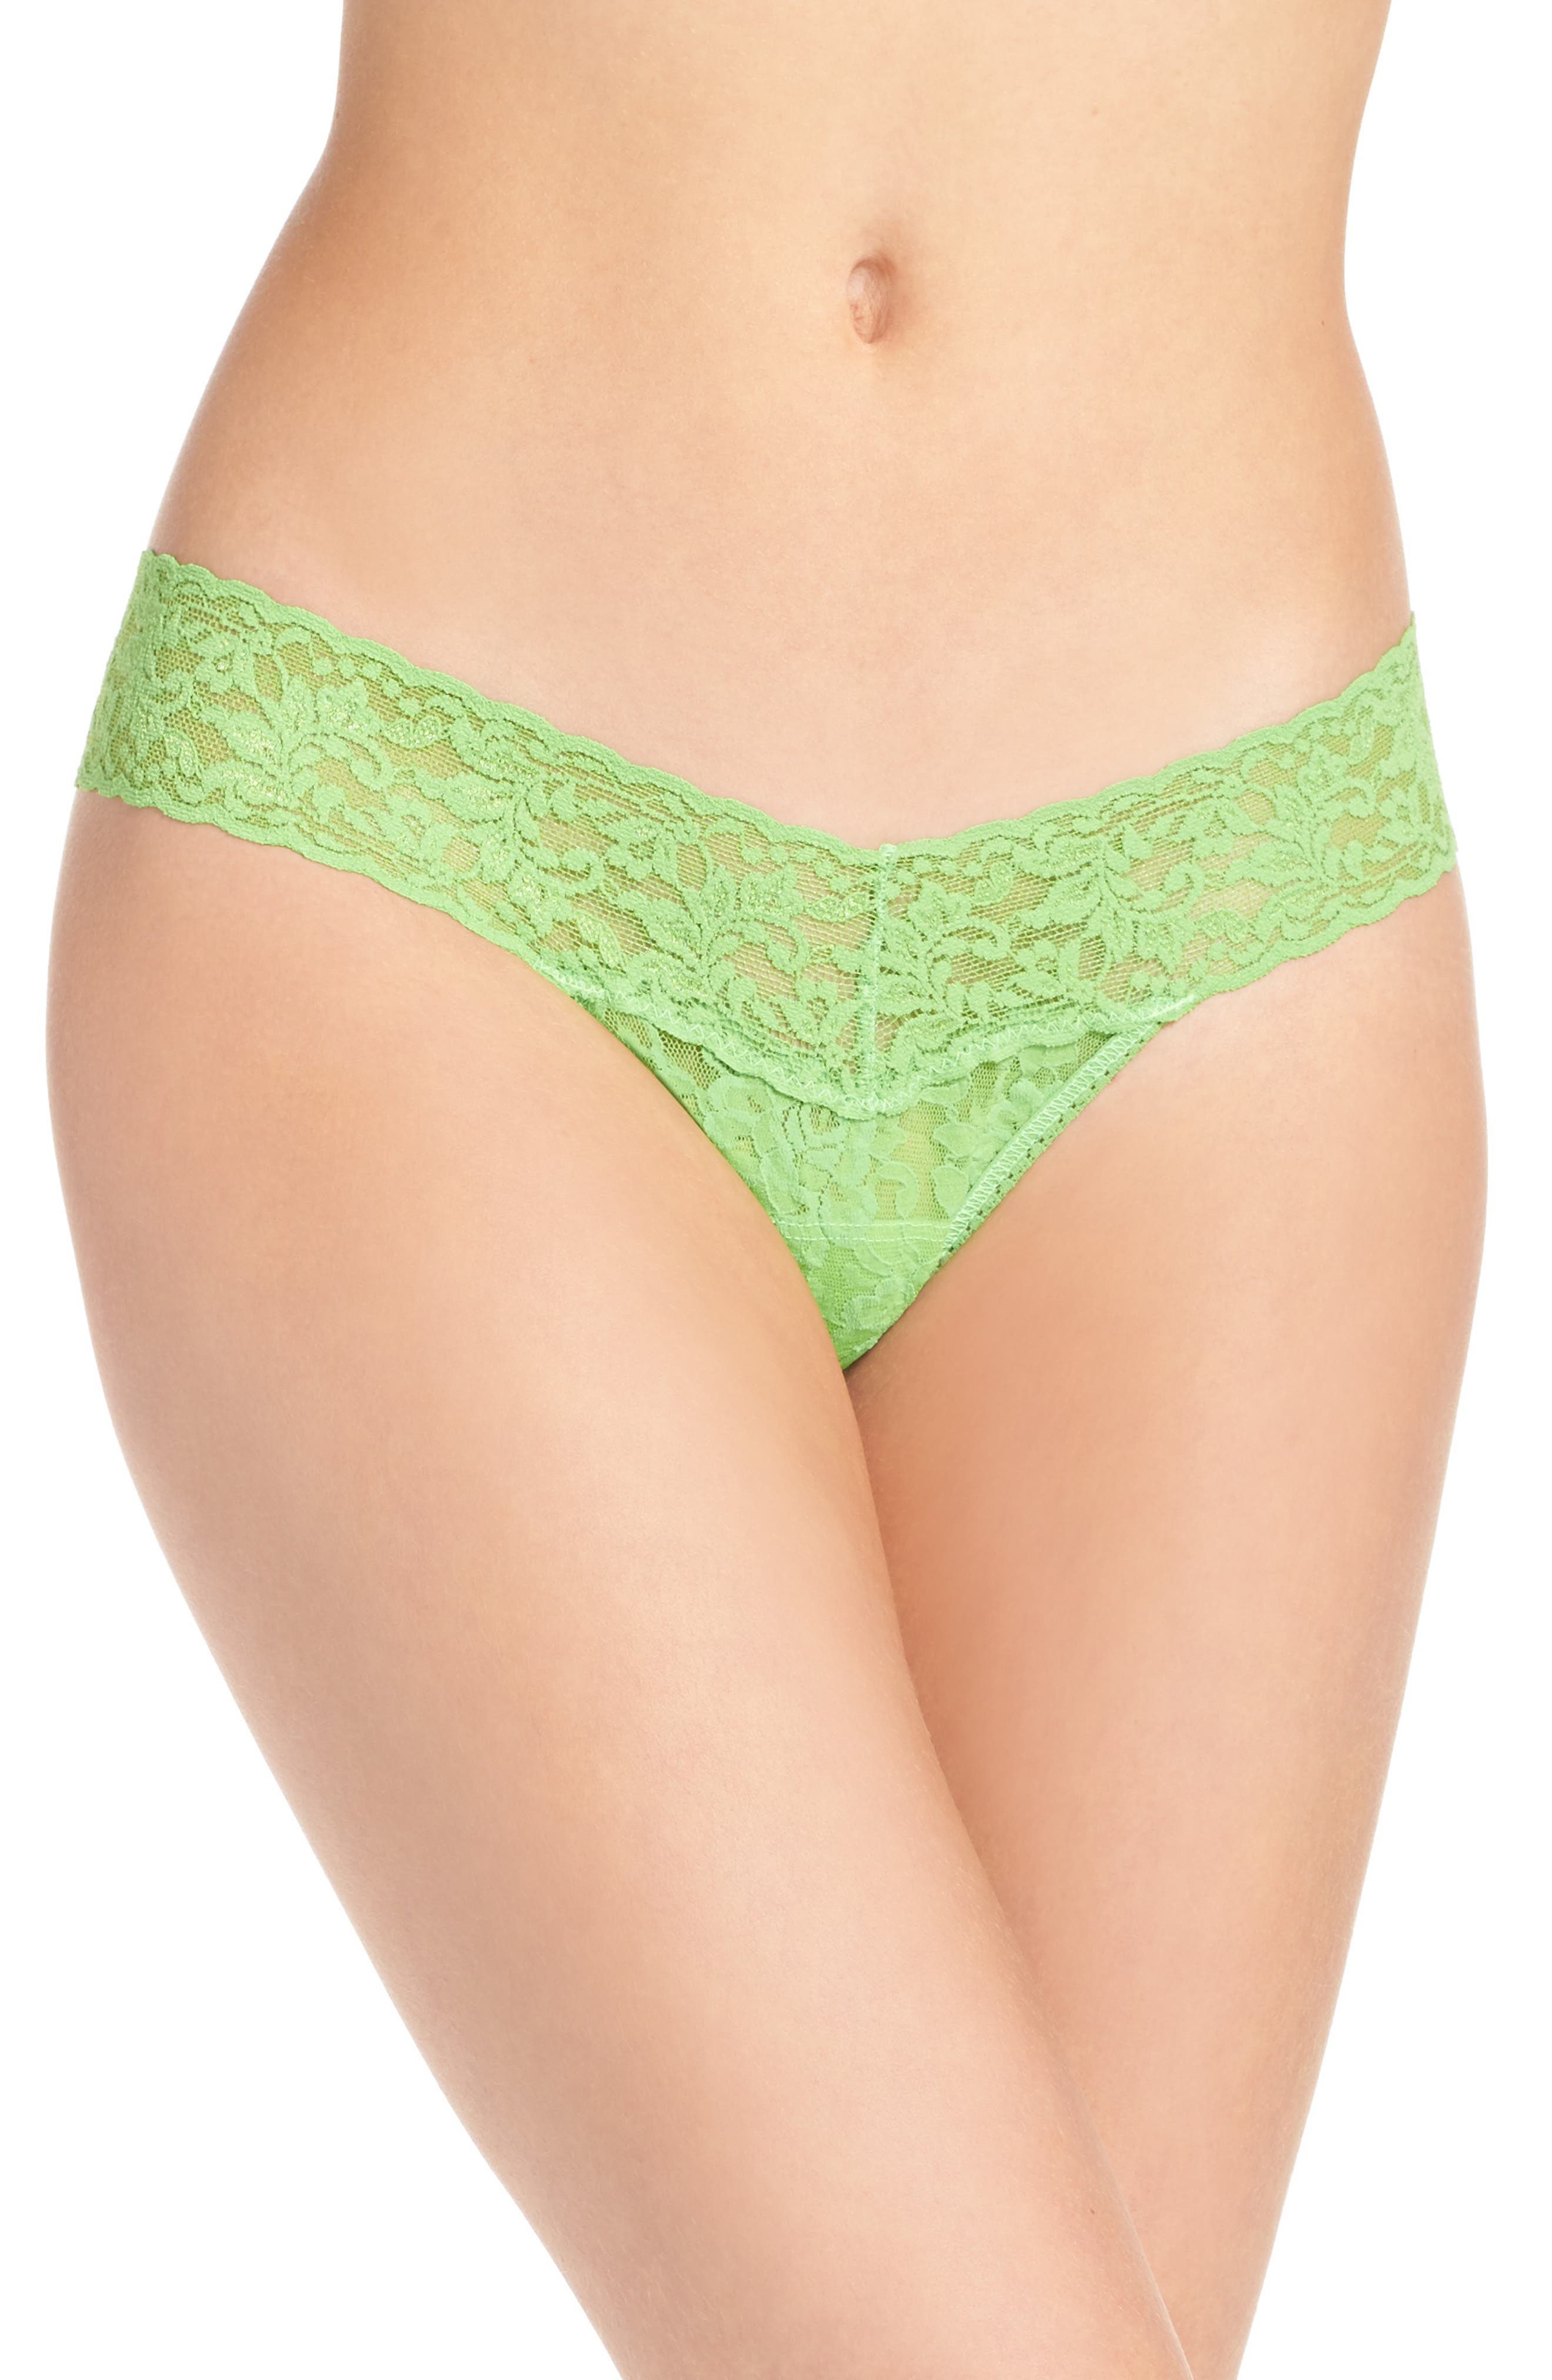 Alternate Image 1 Selected - Hanky Panky 'Signature Lace' Low Rise Thong